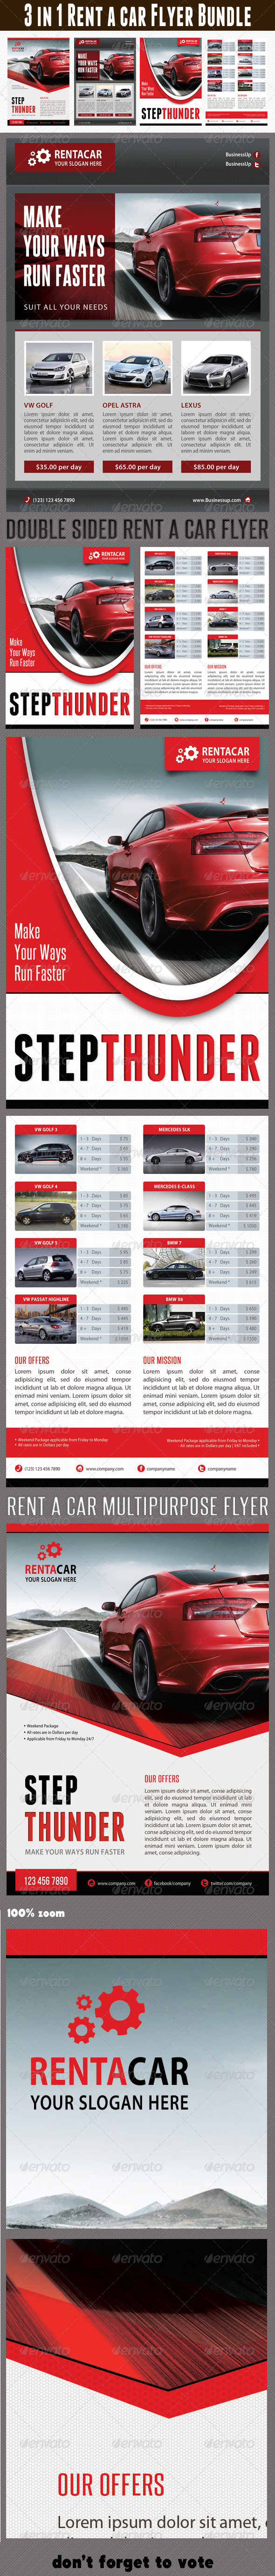 GraphicRiver 3 in 1 Rent A Car Flyer Bundle 01 6679068